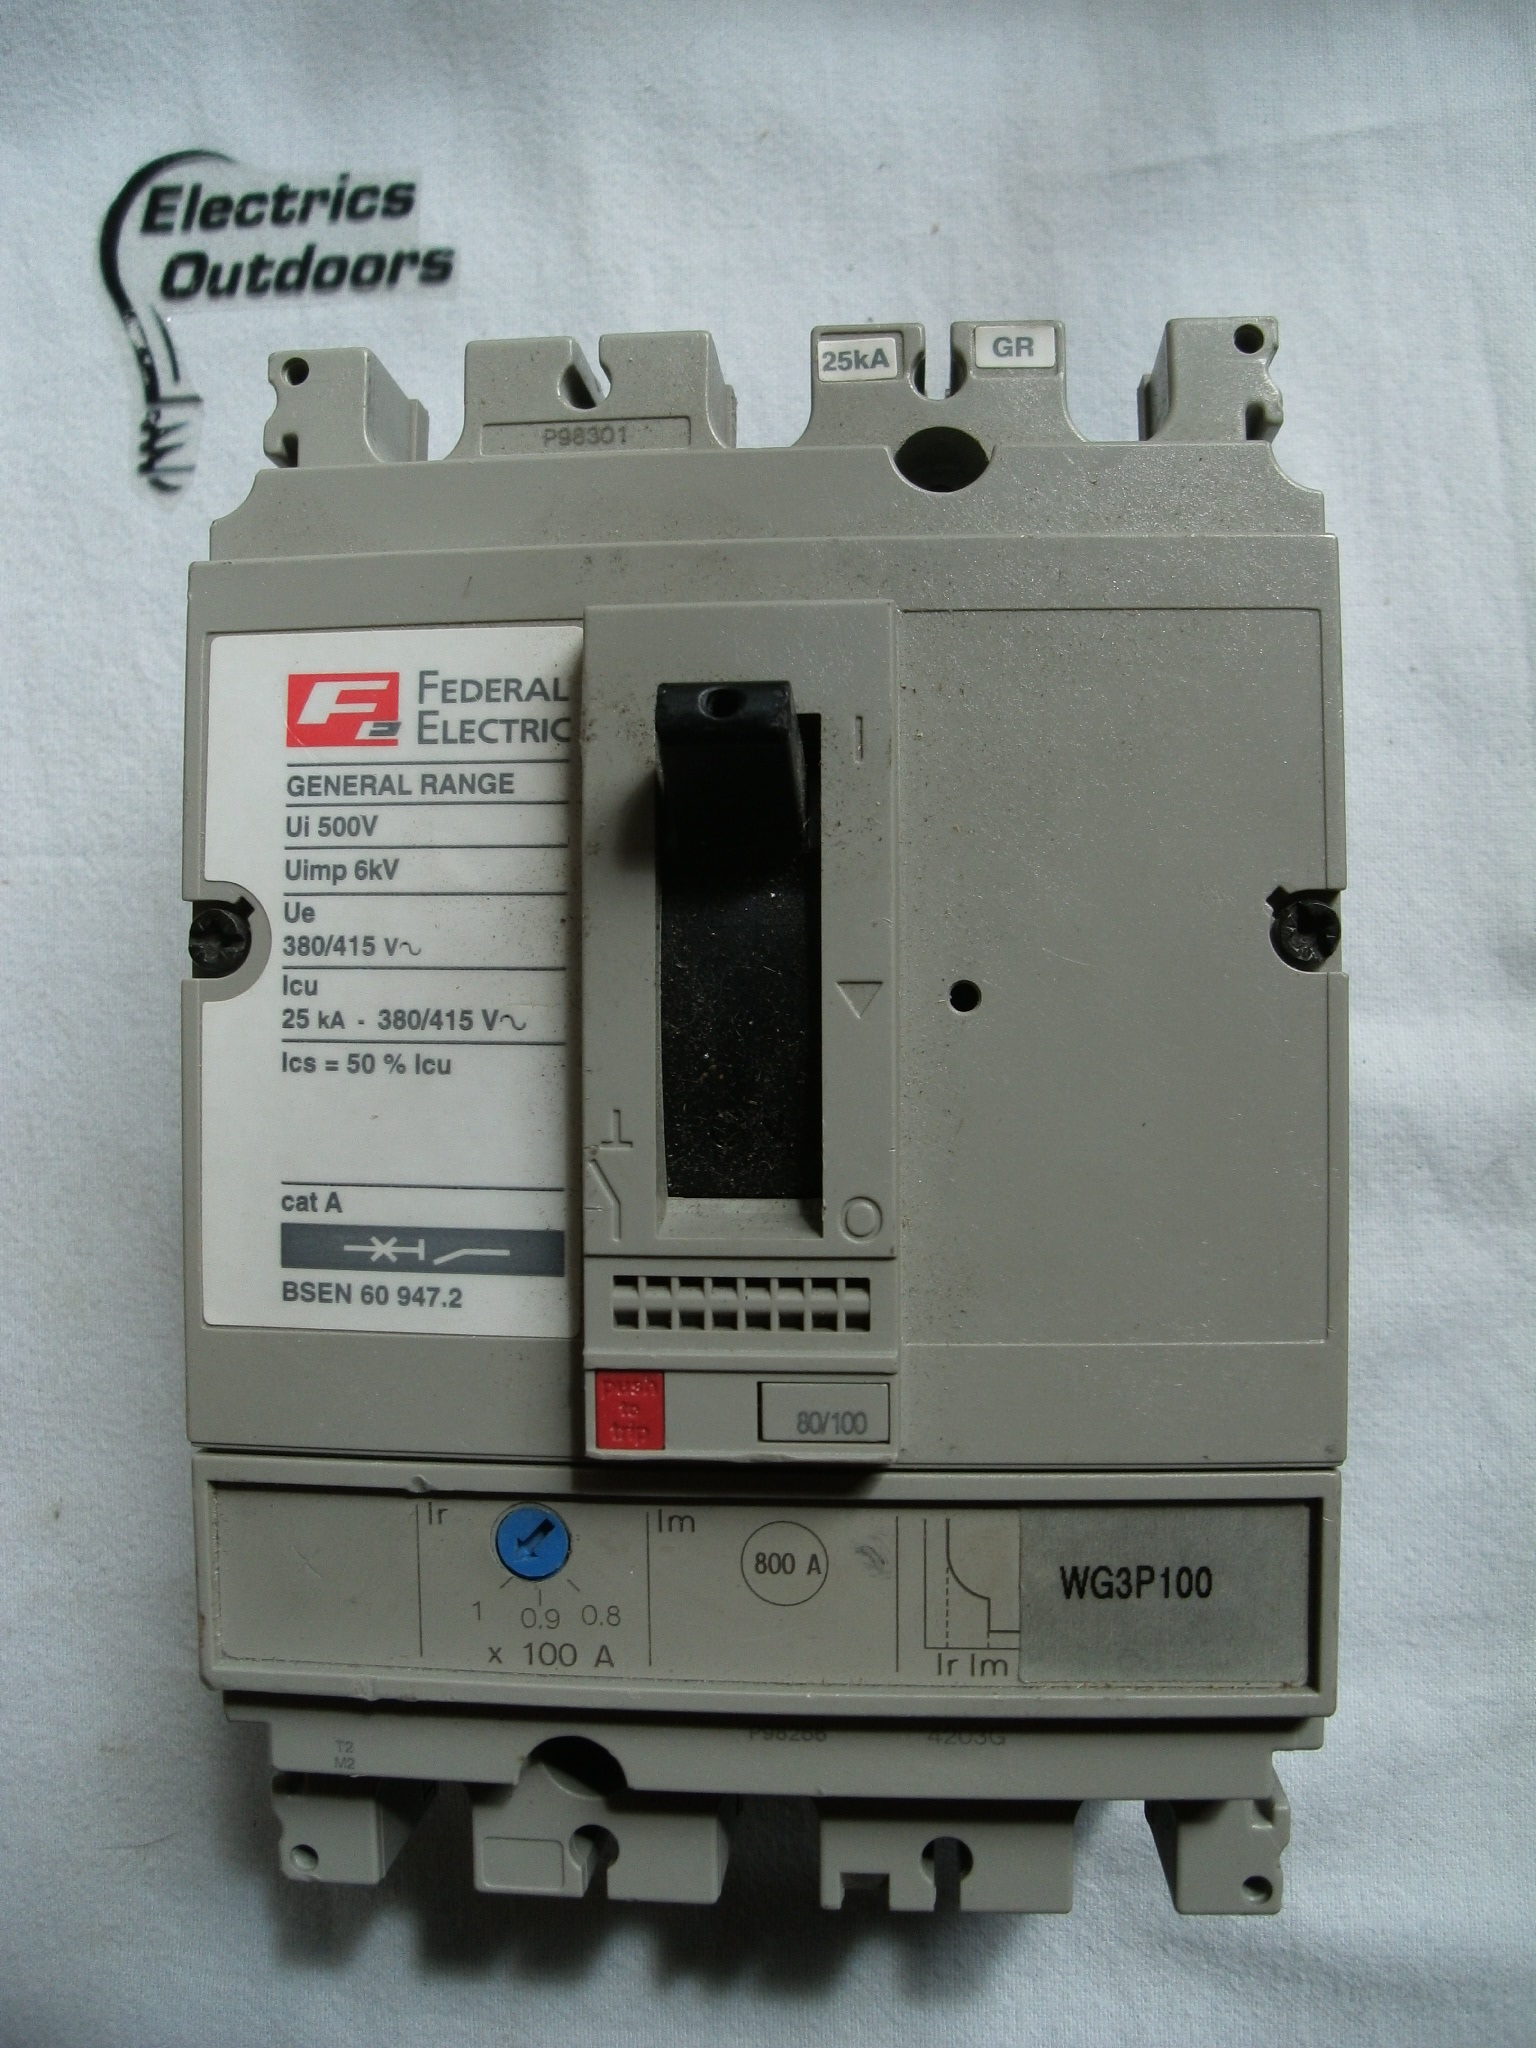 FEDERAL ELECTRIC 100 AMP 25 kA TRIPLE POLE MCCB 380V 415V WG3P100 SB EN 60947